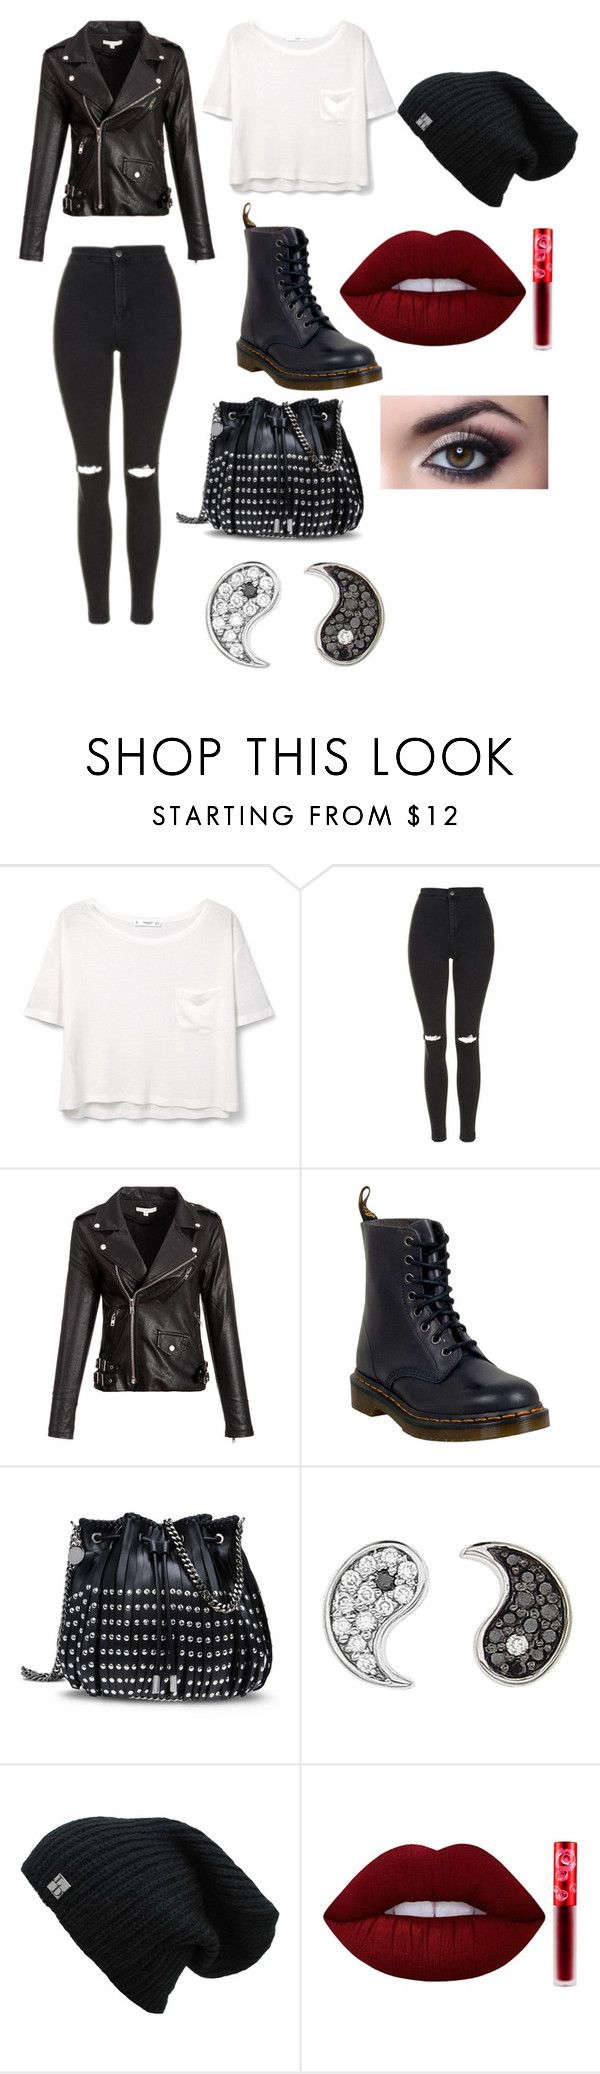 """""""Saturday Night Savage."""" by nrgpatten ❤ liked on Polyvore featuring MANGO, Topshop, Dr. Martens, STELLA McCARTNEY, Sydney Evan and Lime Crime"""